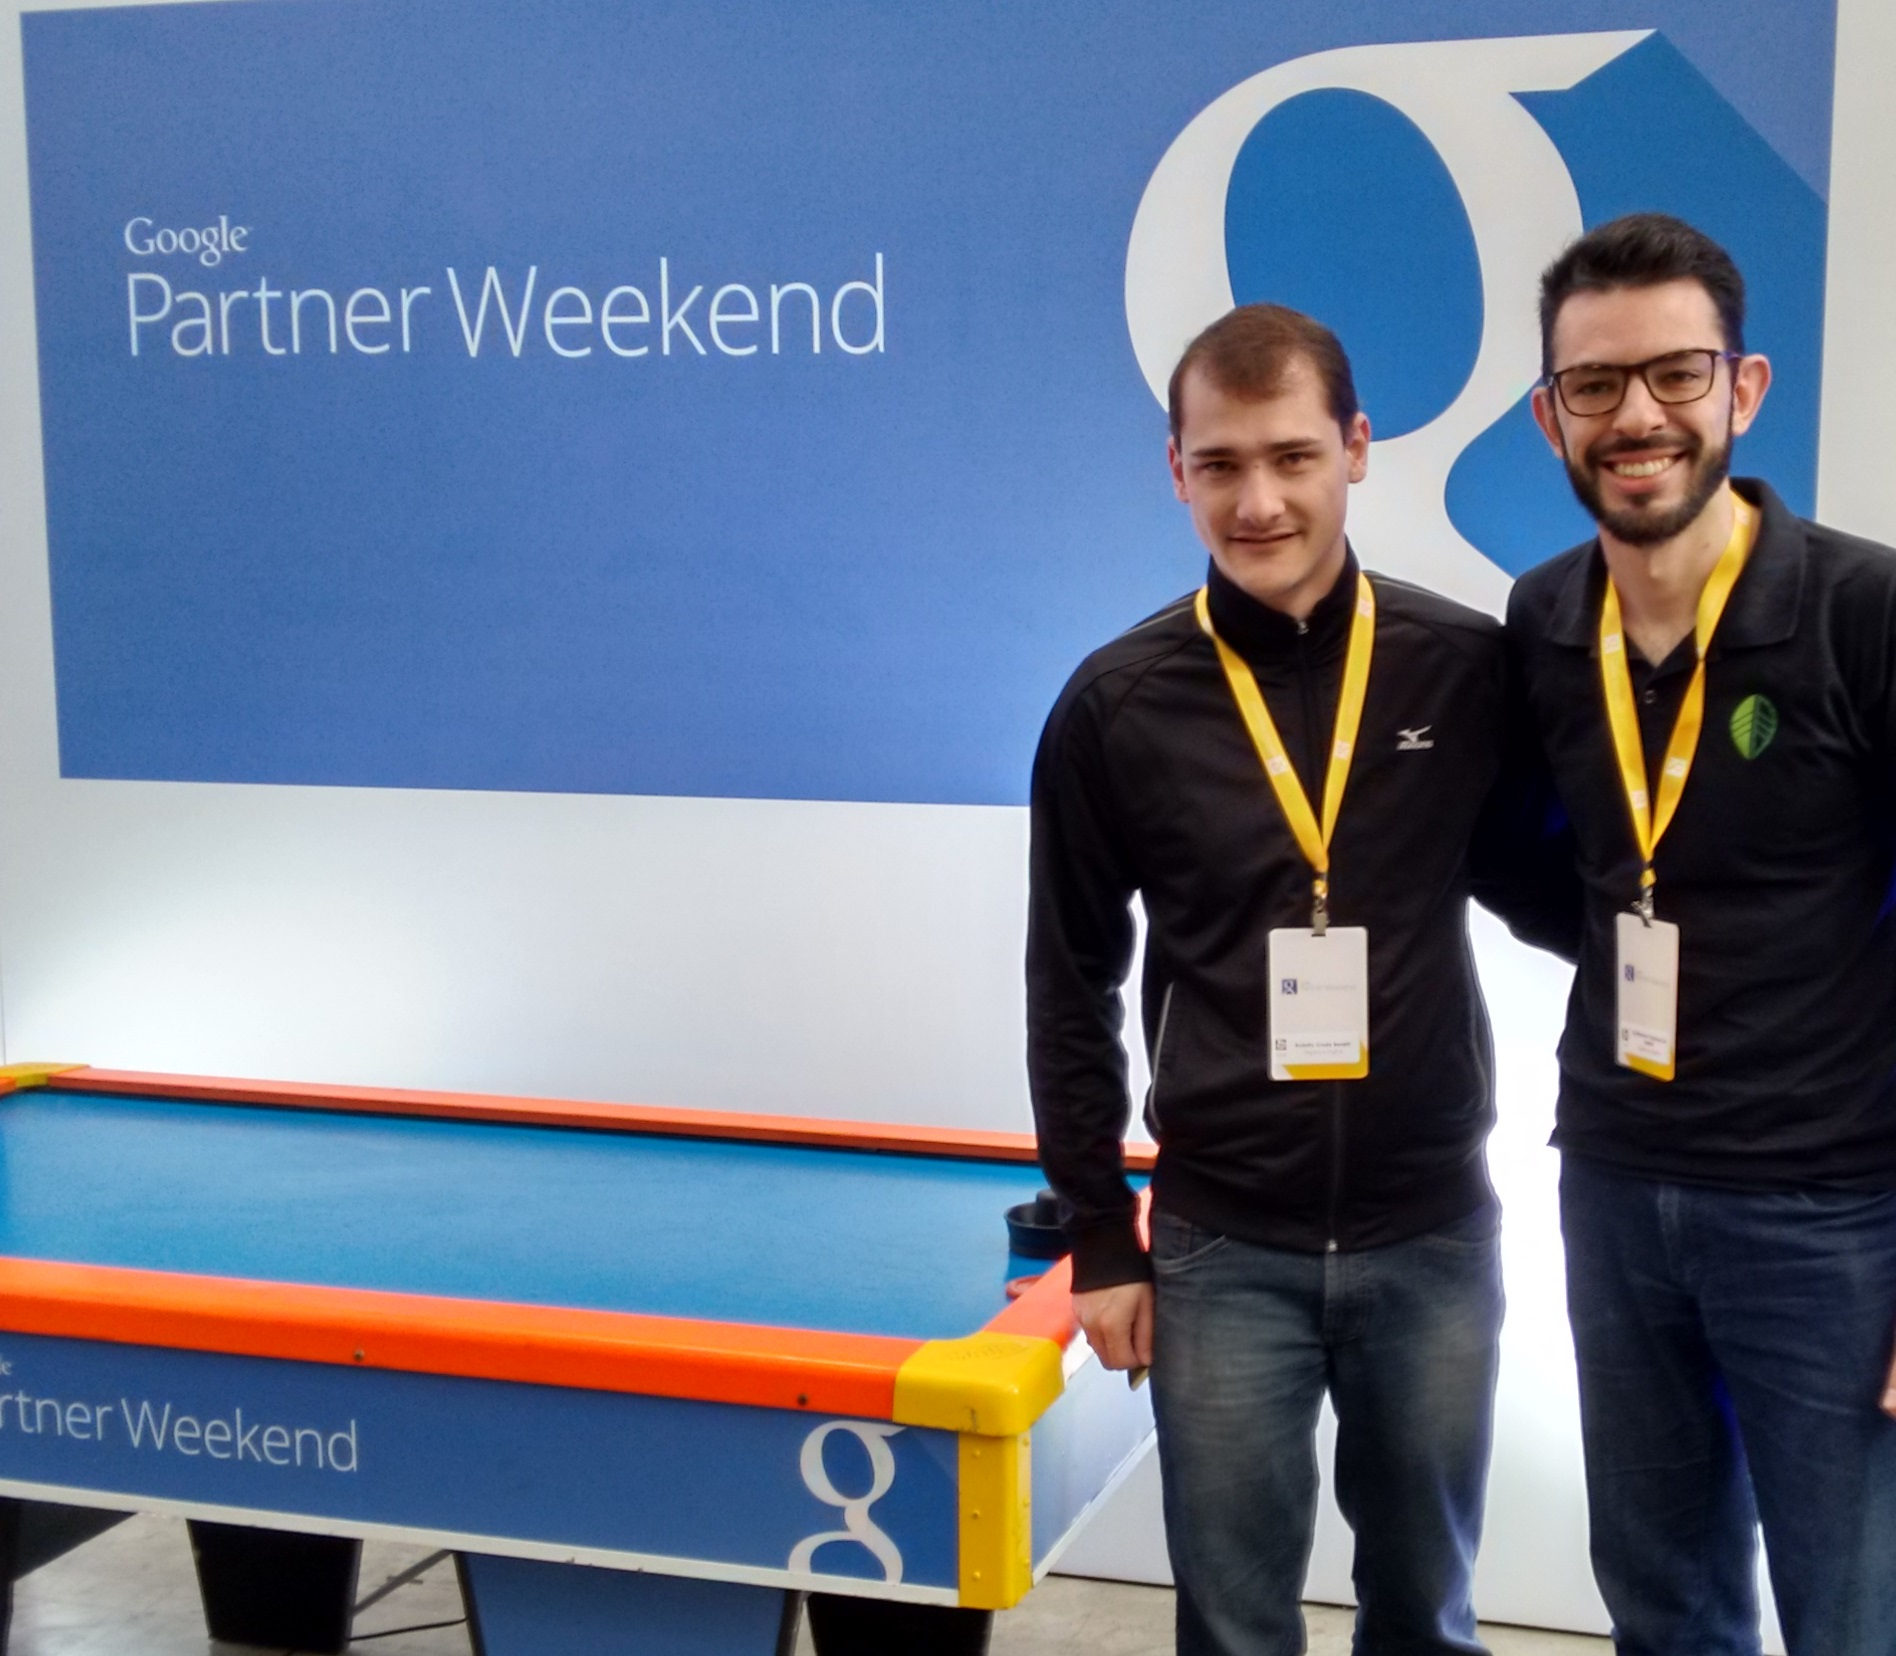 Google Partner Weekend